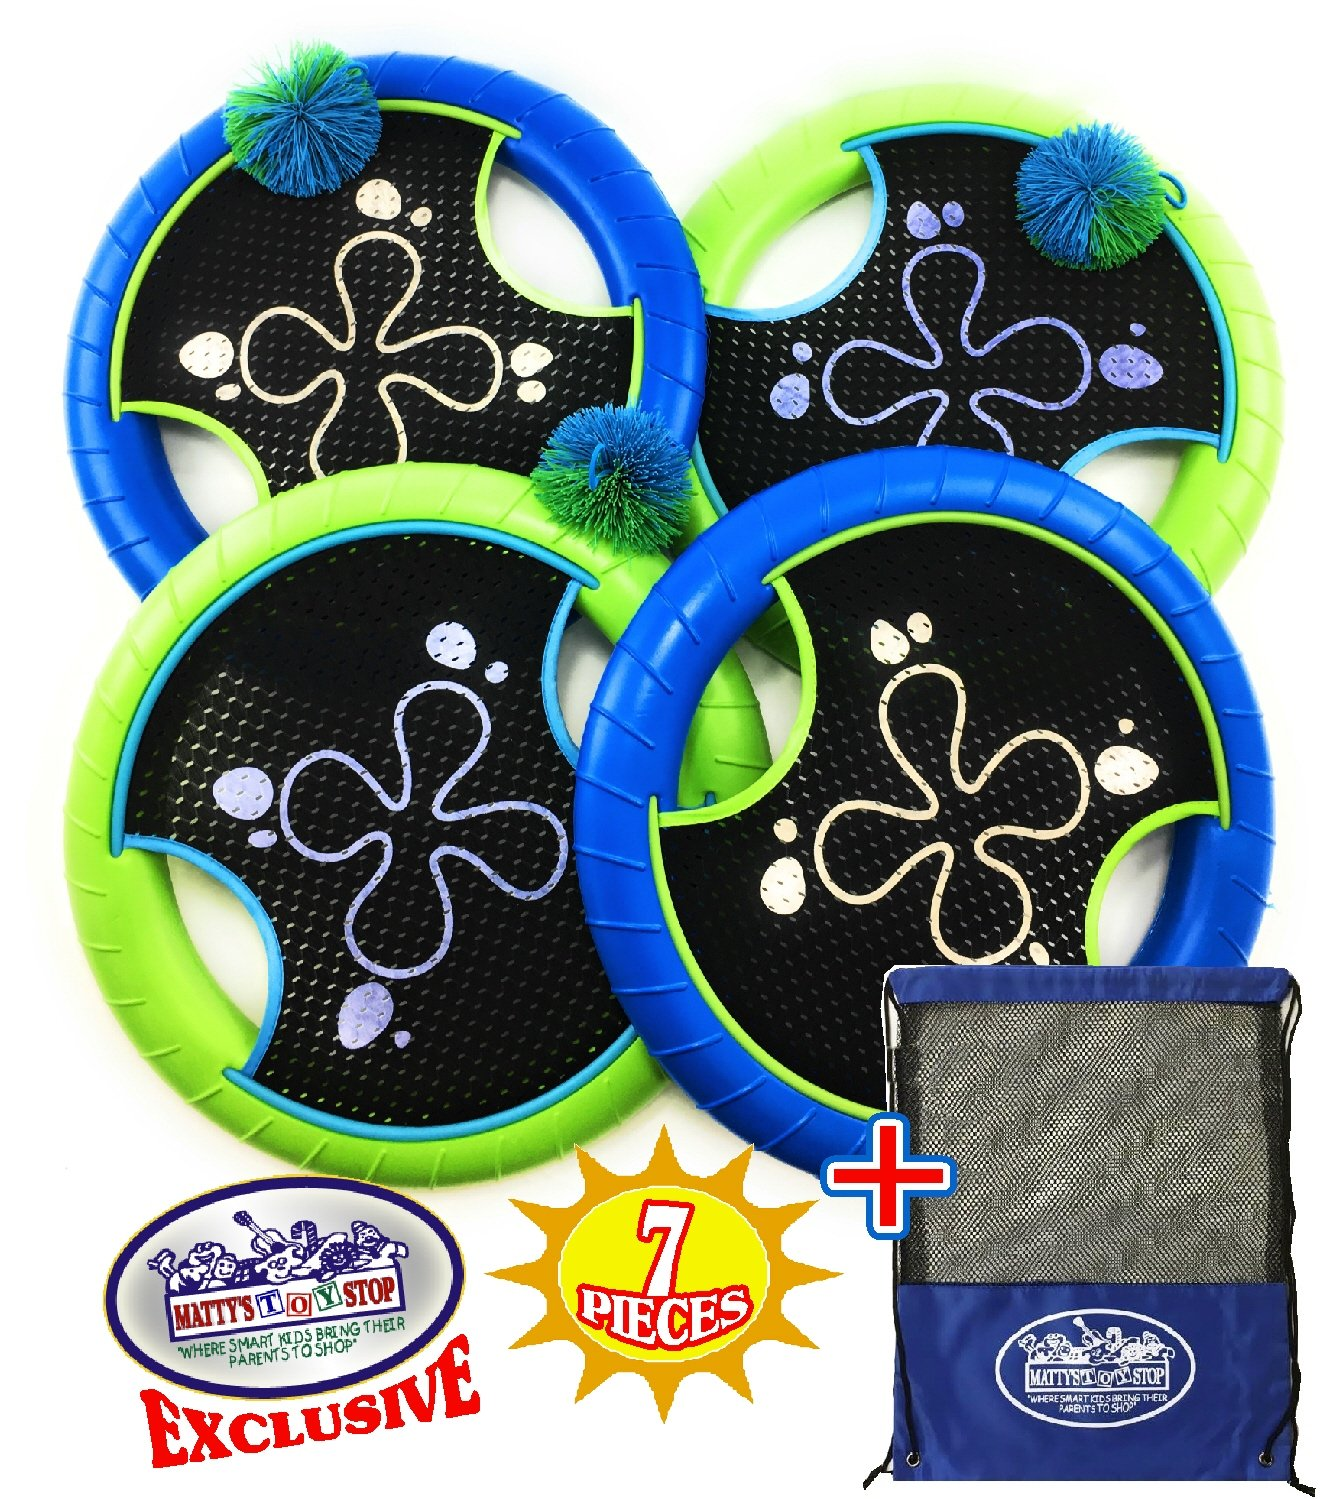 Matty's Toy Stop Deluxe Trampoline Extreme Paddle Ball Set for 4 Players - Includes 4 (12'') Trampoline Paddles, 3 Rubber String Balls & Storage Bag by Matty's Toy Stop